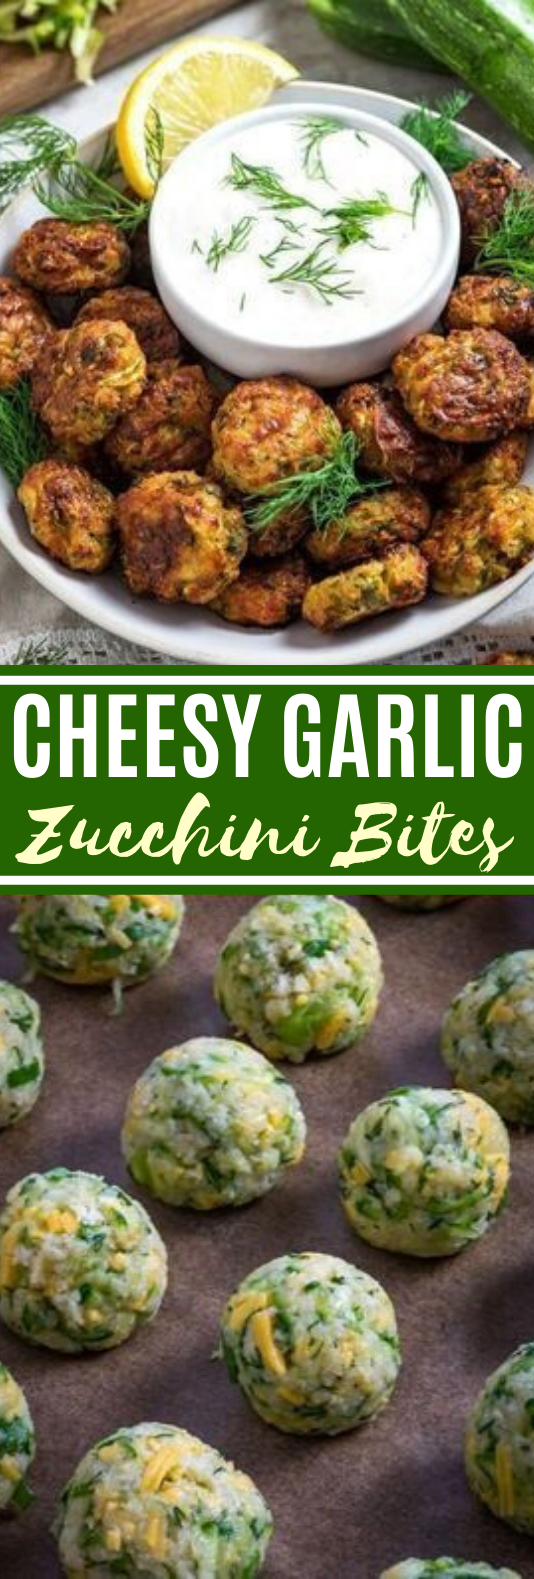 Cheesy Garlic Zucchini Bites #healthy #appetizers #lowcarb #snacks #veggies